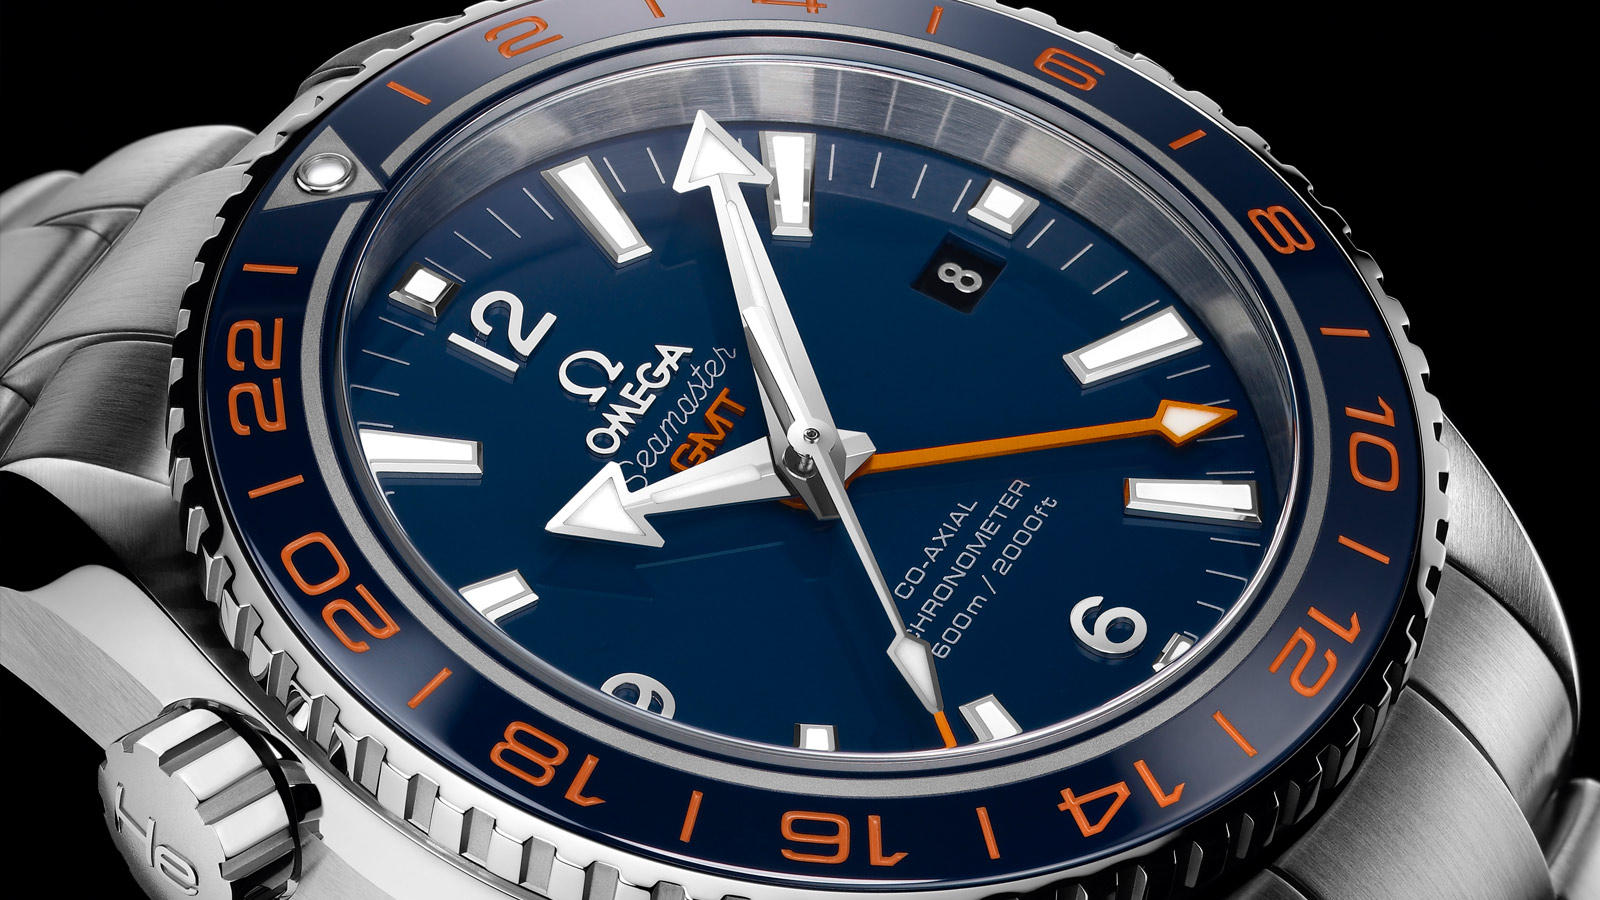 Seamaster Planet Ocean 600M Planet Ocean 600M Omega Co‑axial GMT 43.5 mm - 232.30.44.22.03.001 - View 1